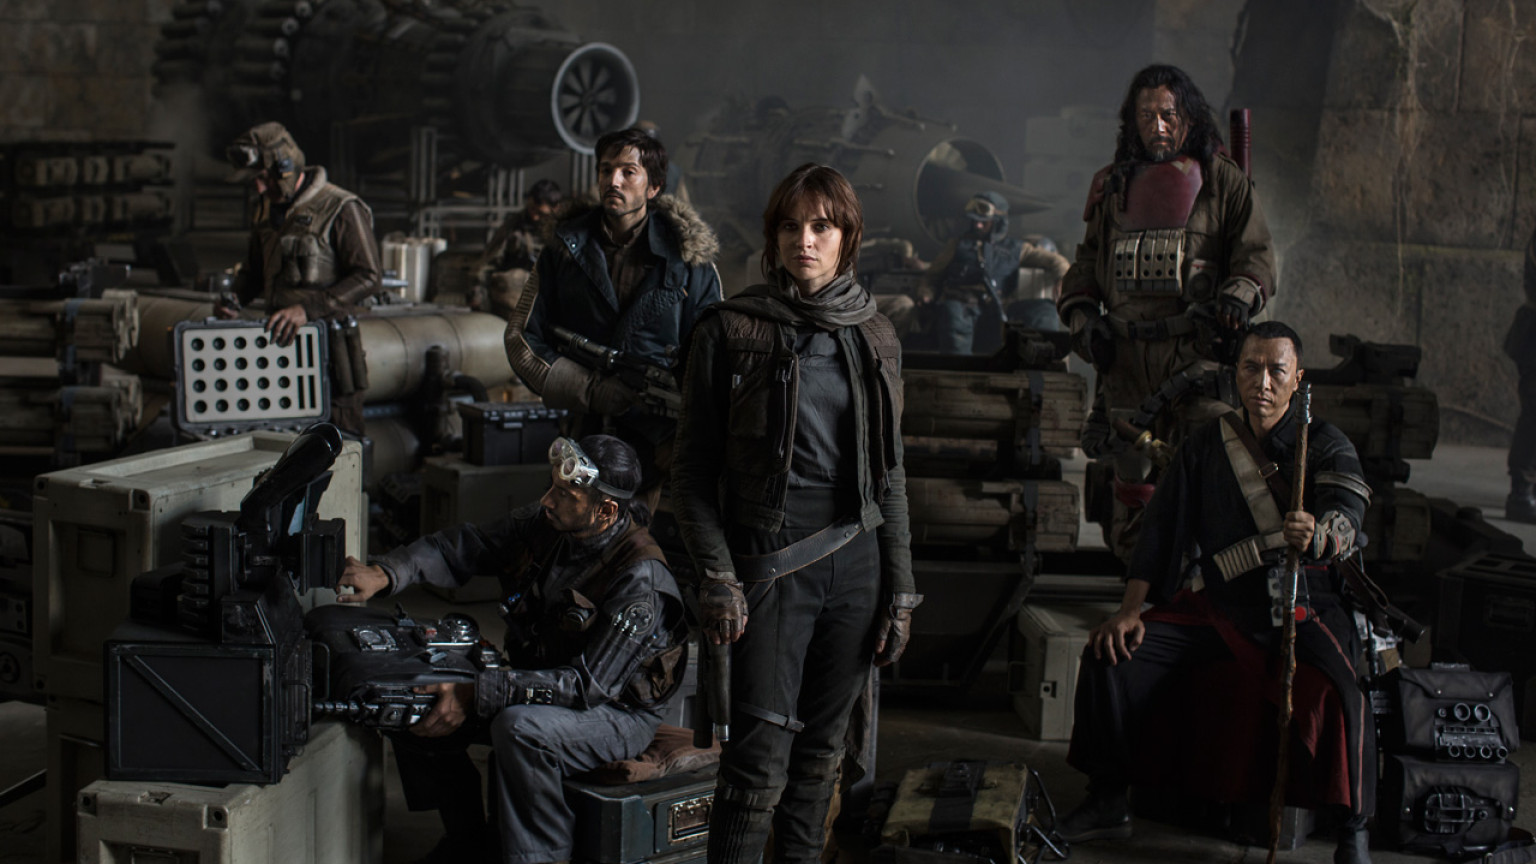 Star Wars Rogue One Cast and Crew